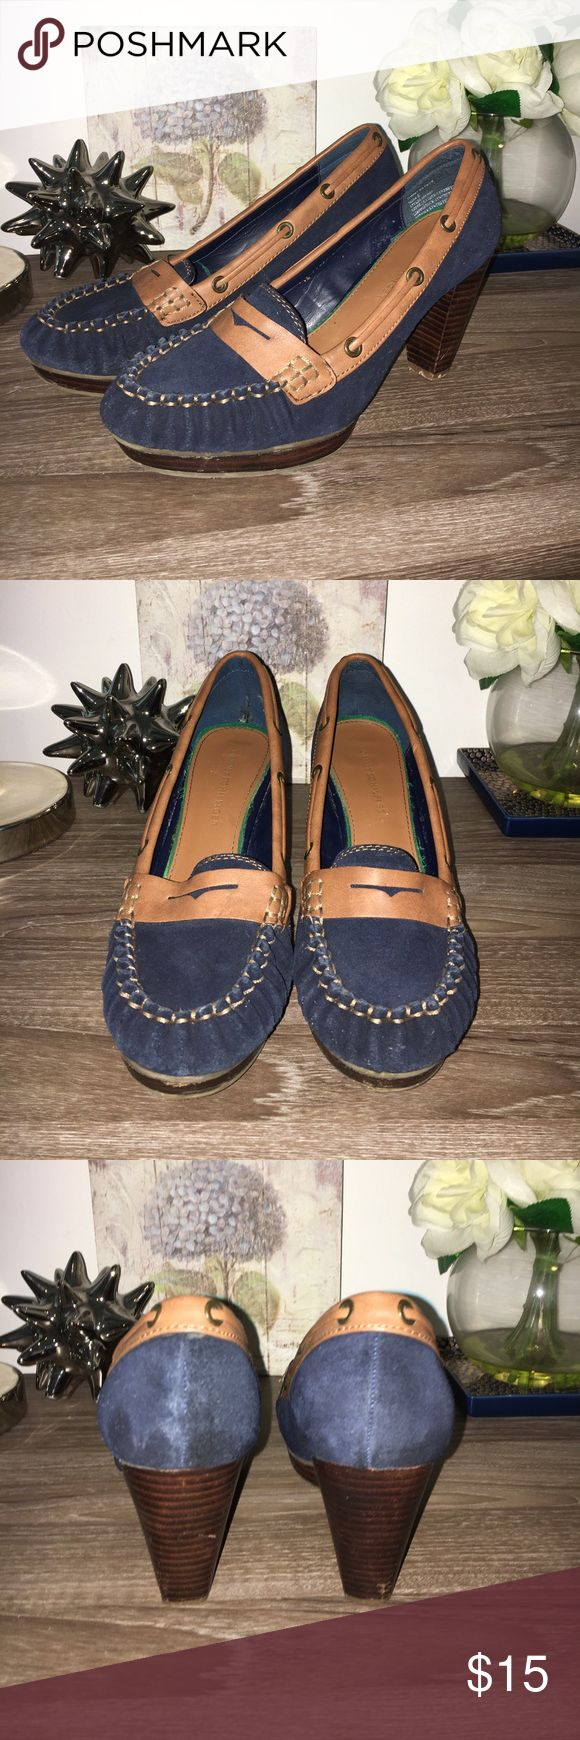 Tommy Hilfiger High Heel Boat Shoes Navy blue boat shoes with a brown roped border and brown wooden inspired heel. Tommy Hilfiger Shoes Heels